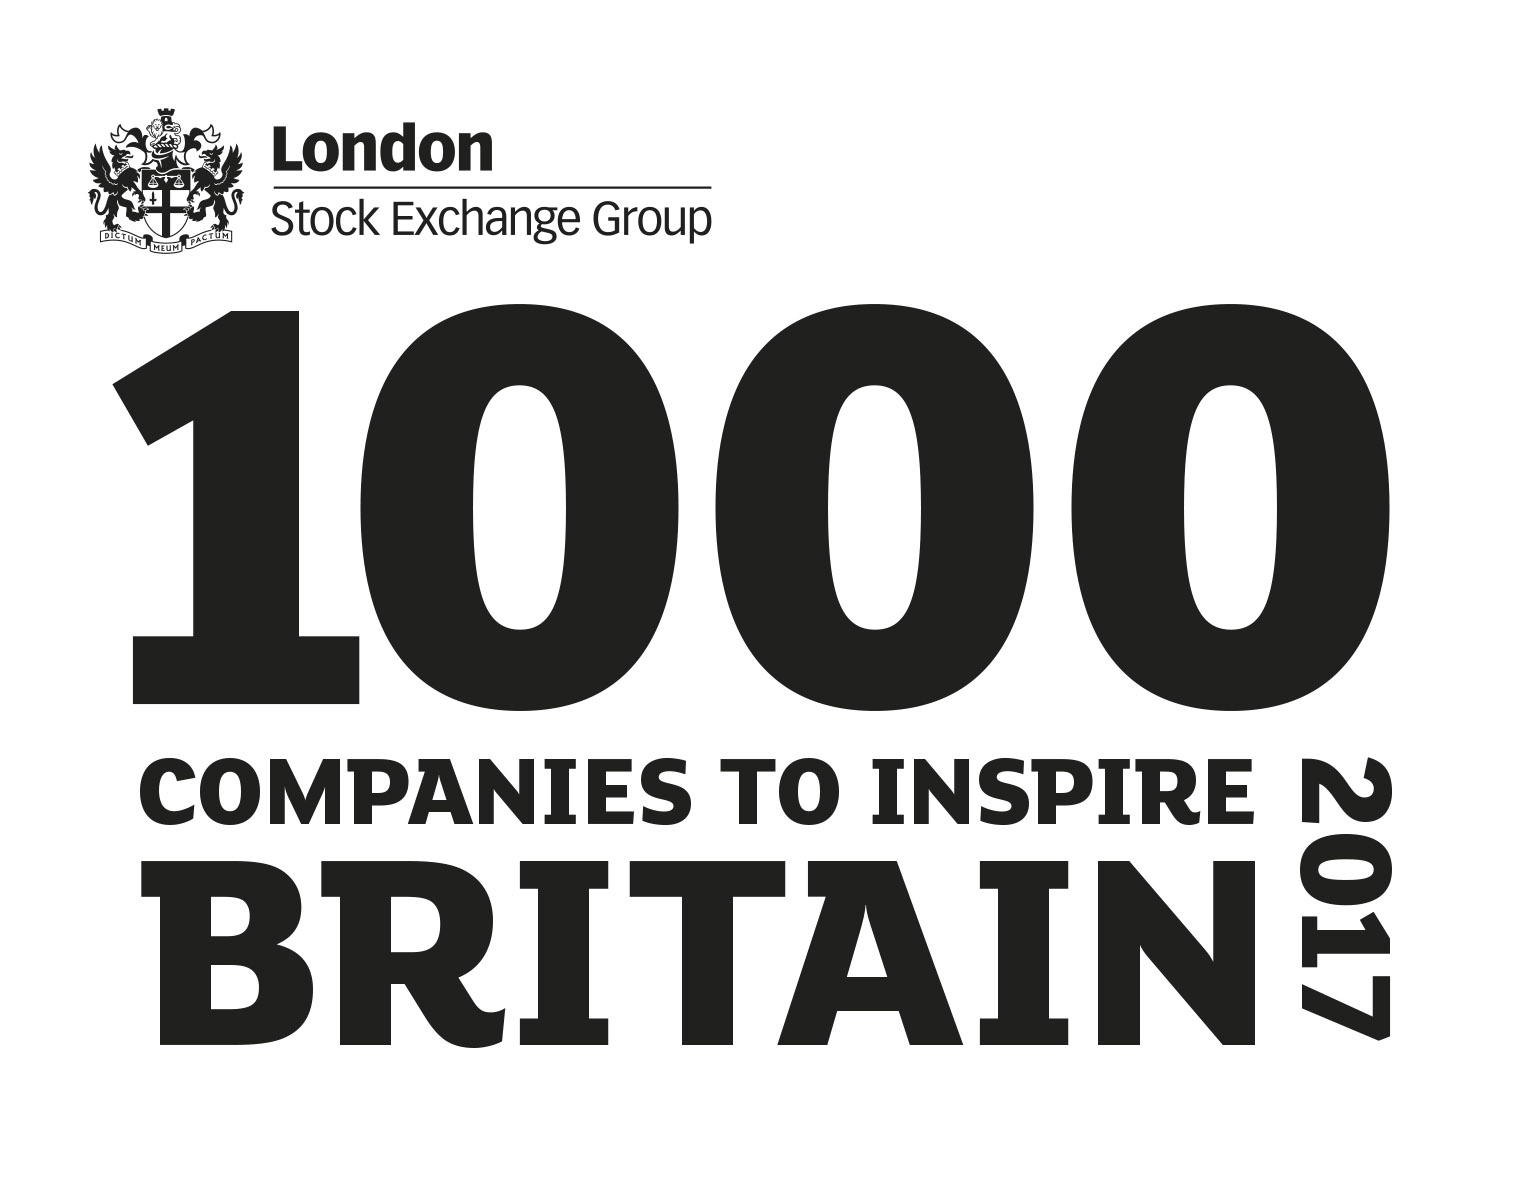 London Stock Exchange - 1,000 Companies to Inspire Britain 2017